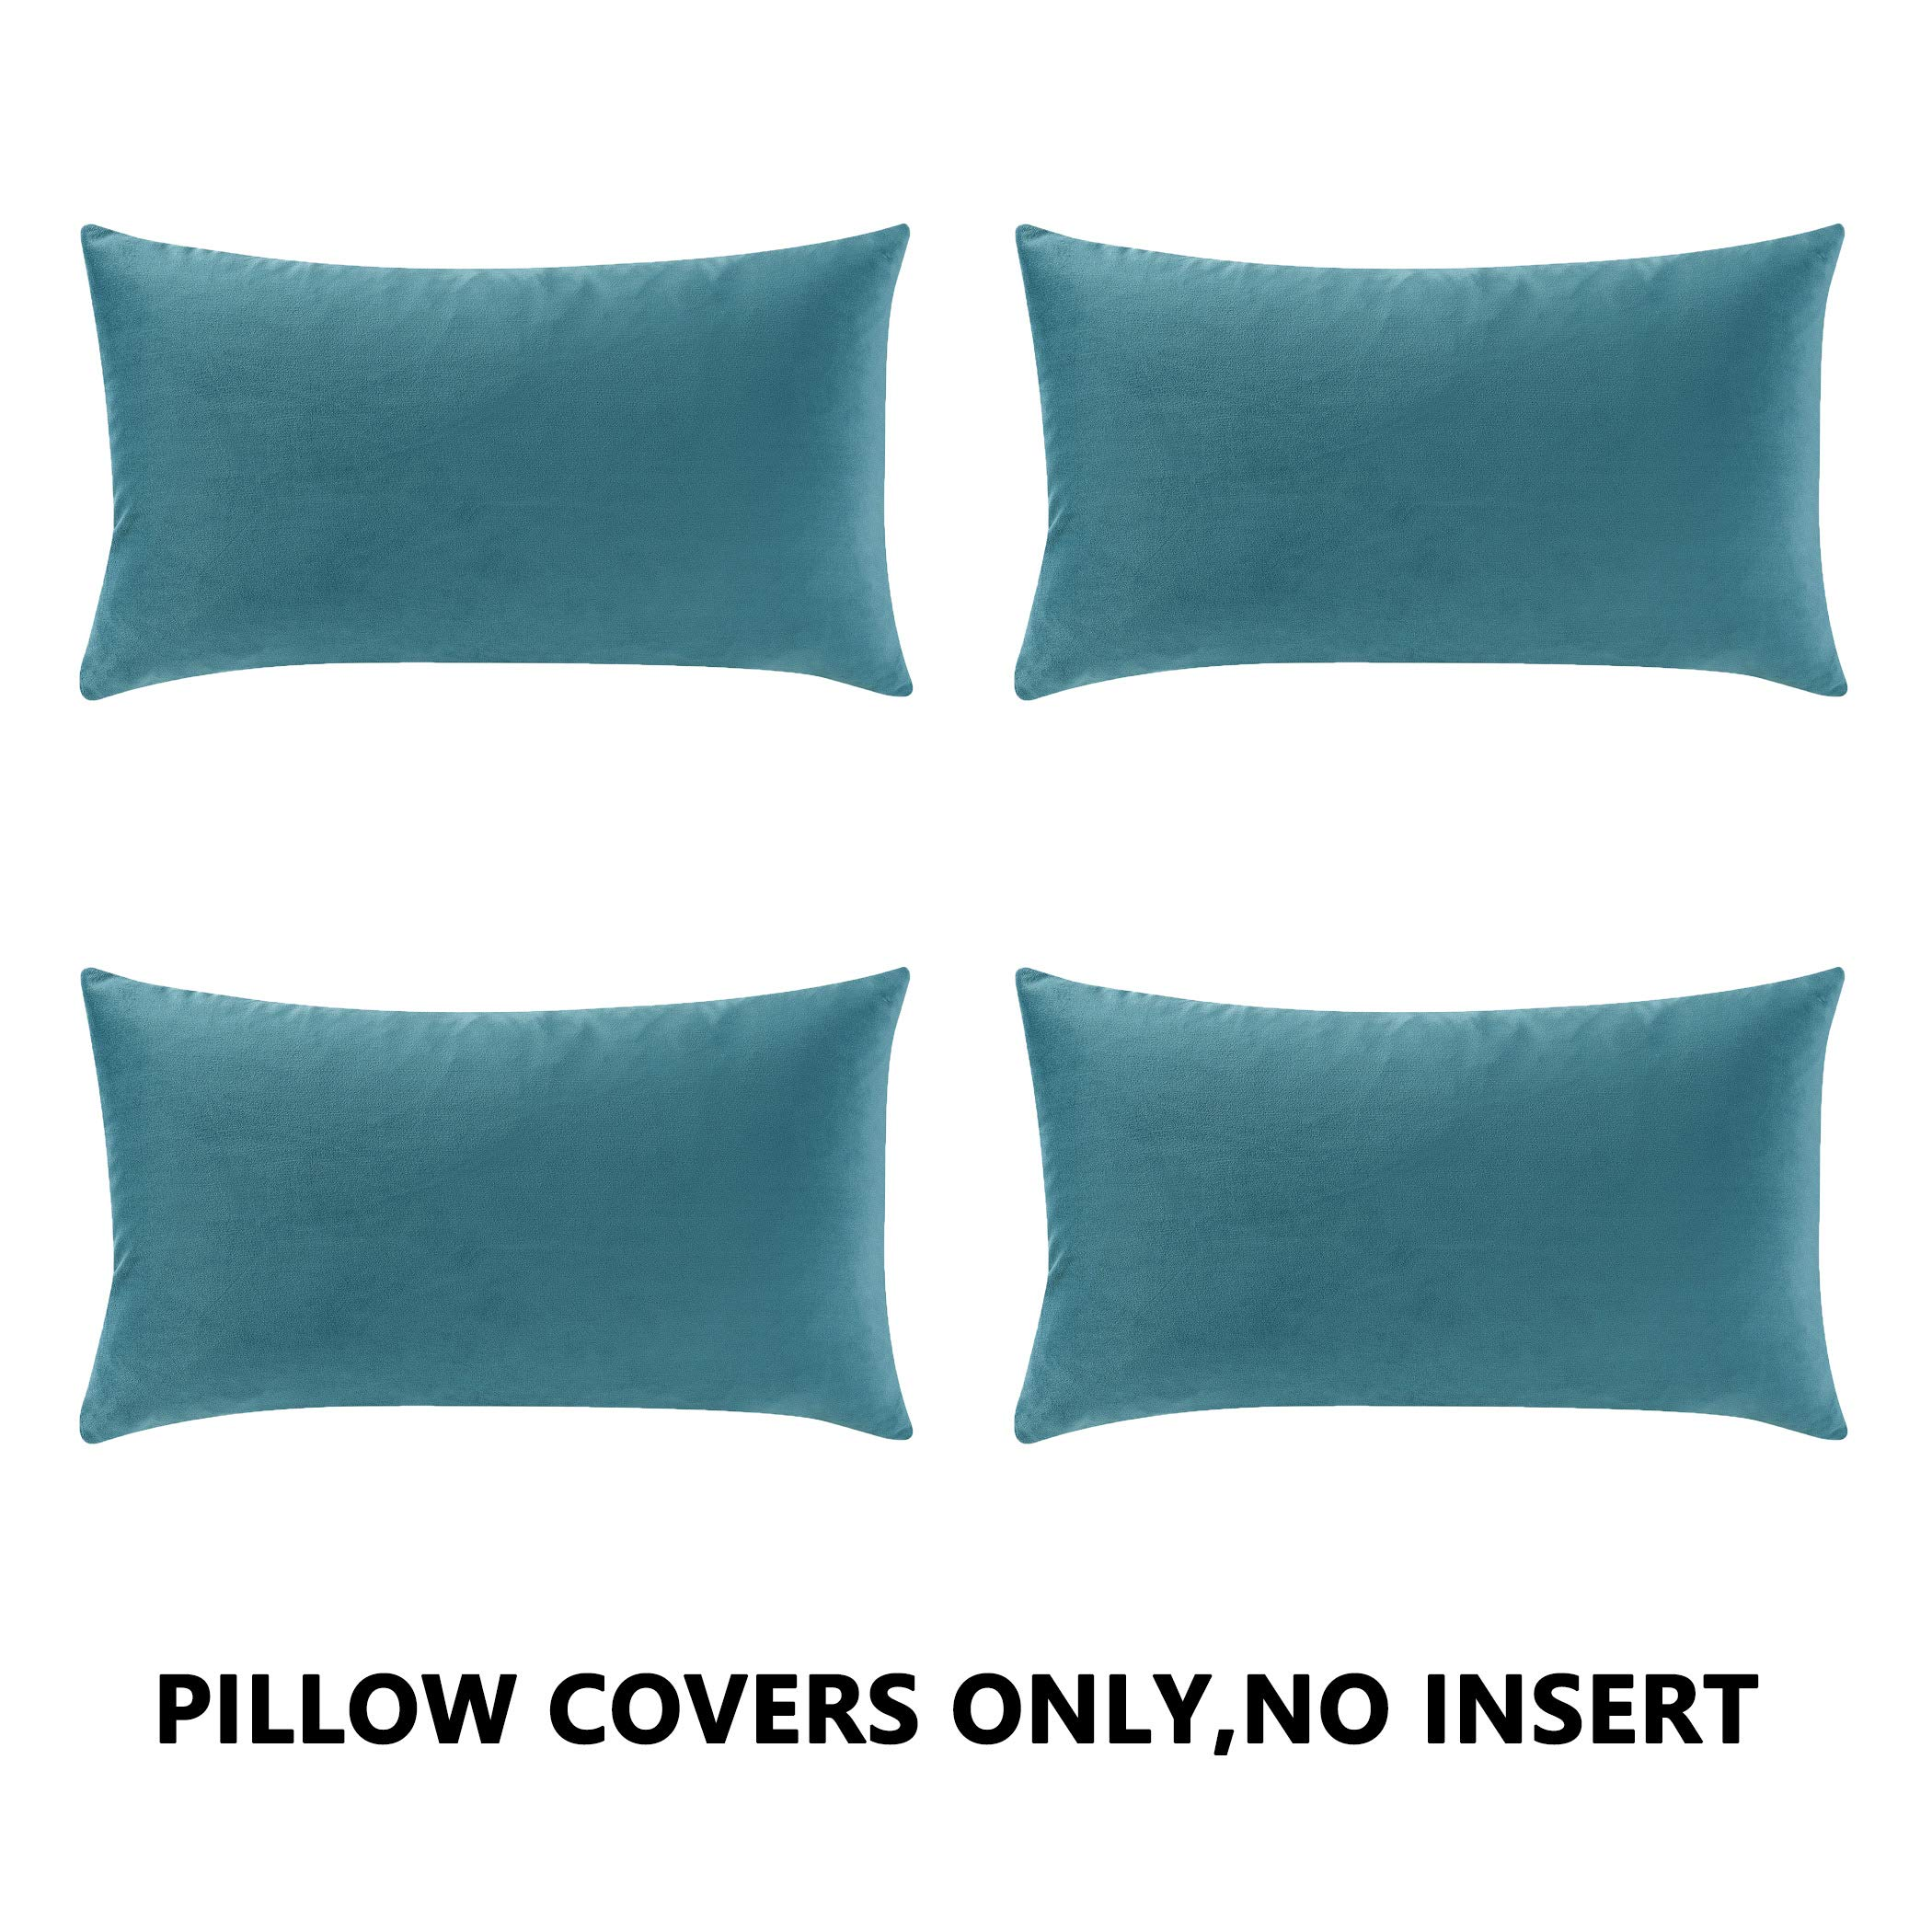 COMFORTLAND New Year/Christmas Decorative Pillow Covers 12x20 Light Blue: 4 Pack Cozy Soft Velvet Rectangular Throw Pillow Cases for Farmhouse Sofa Couch Bed Chair Home Decor Decorations